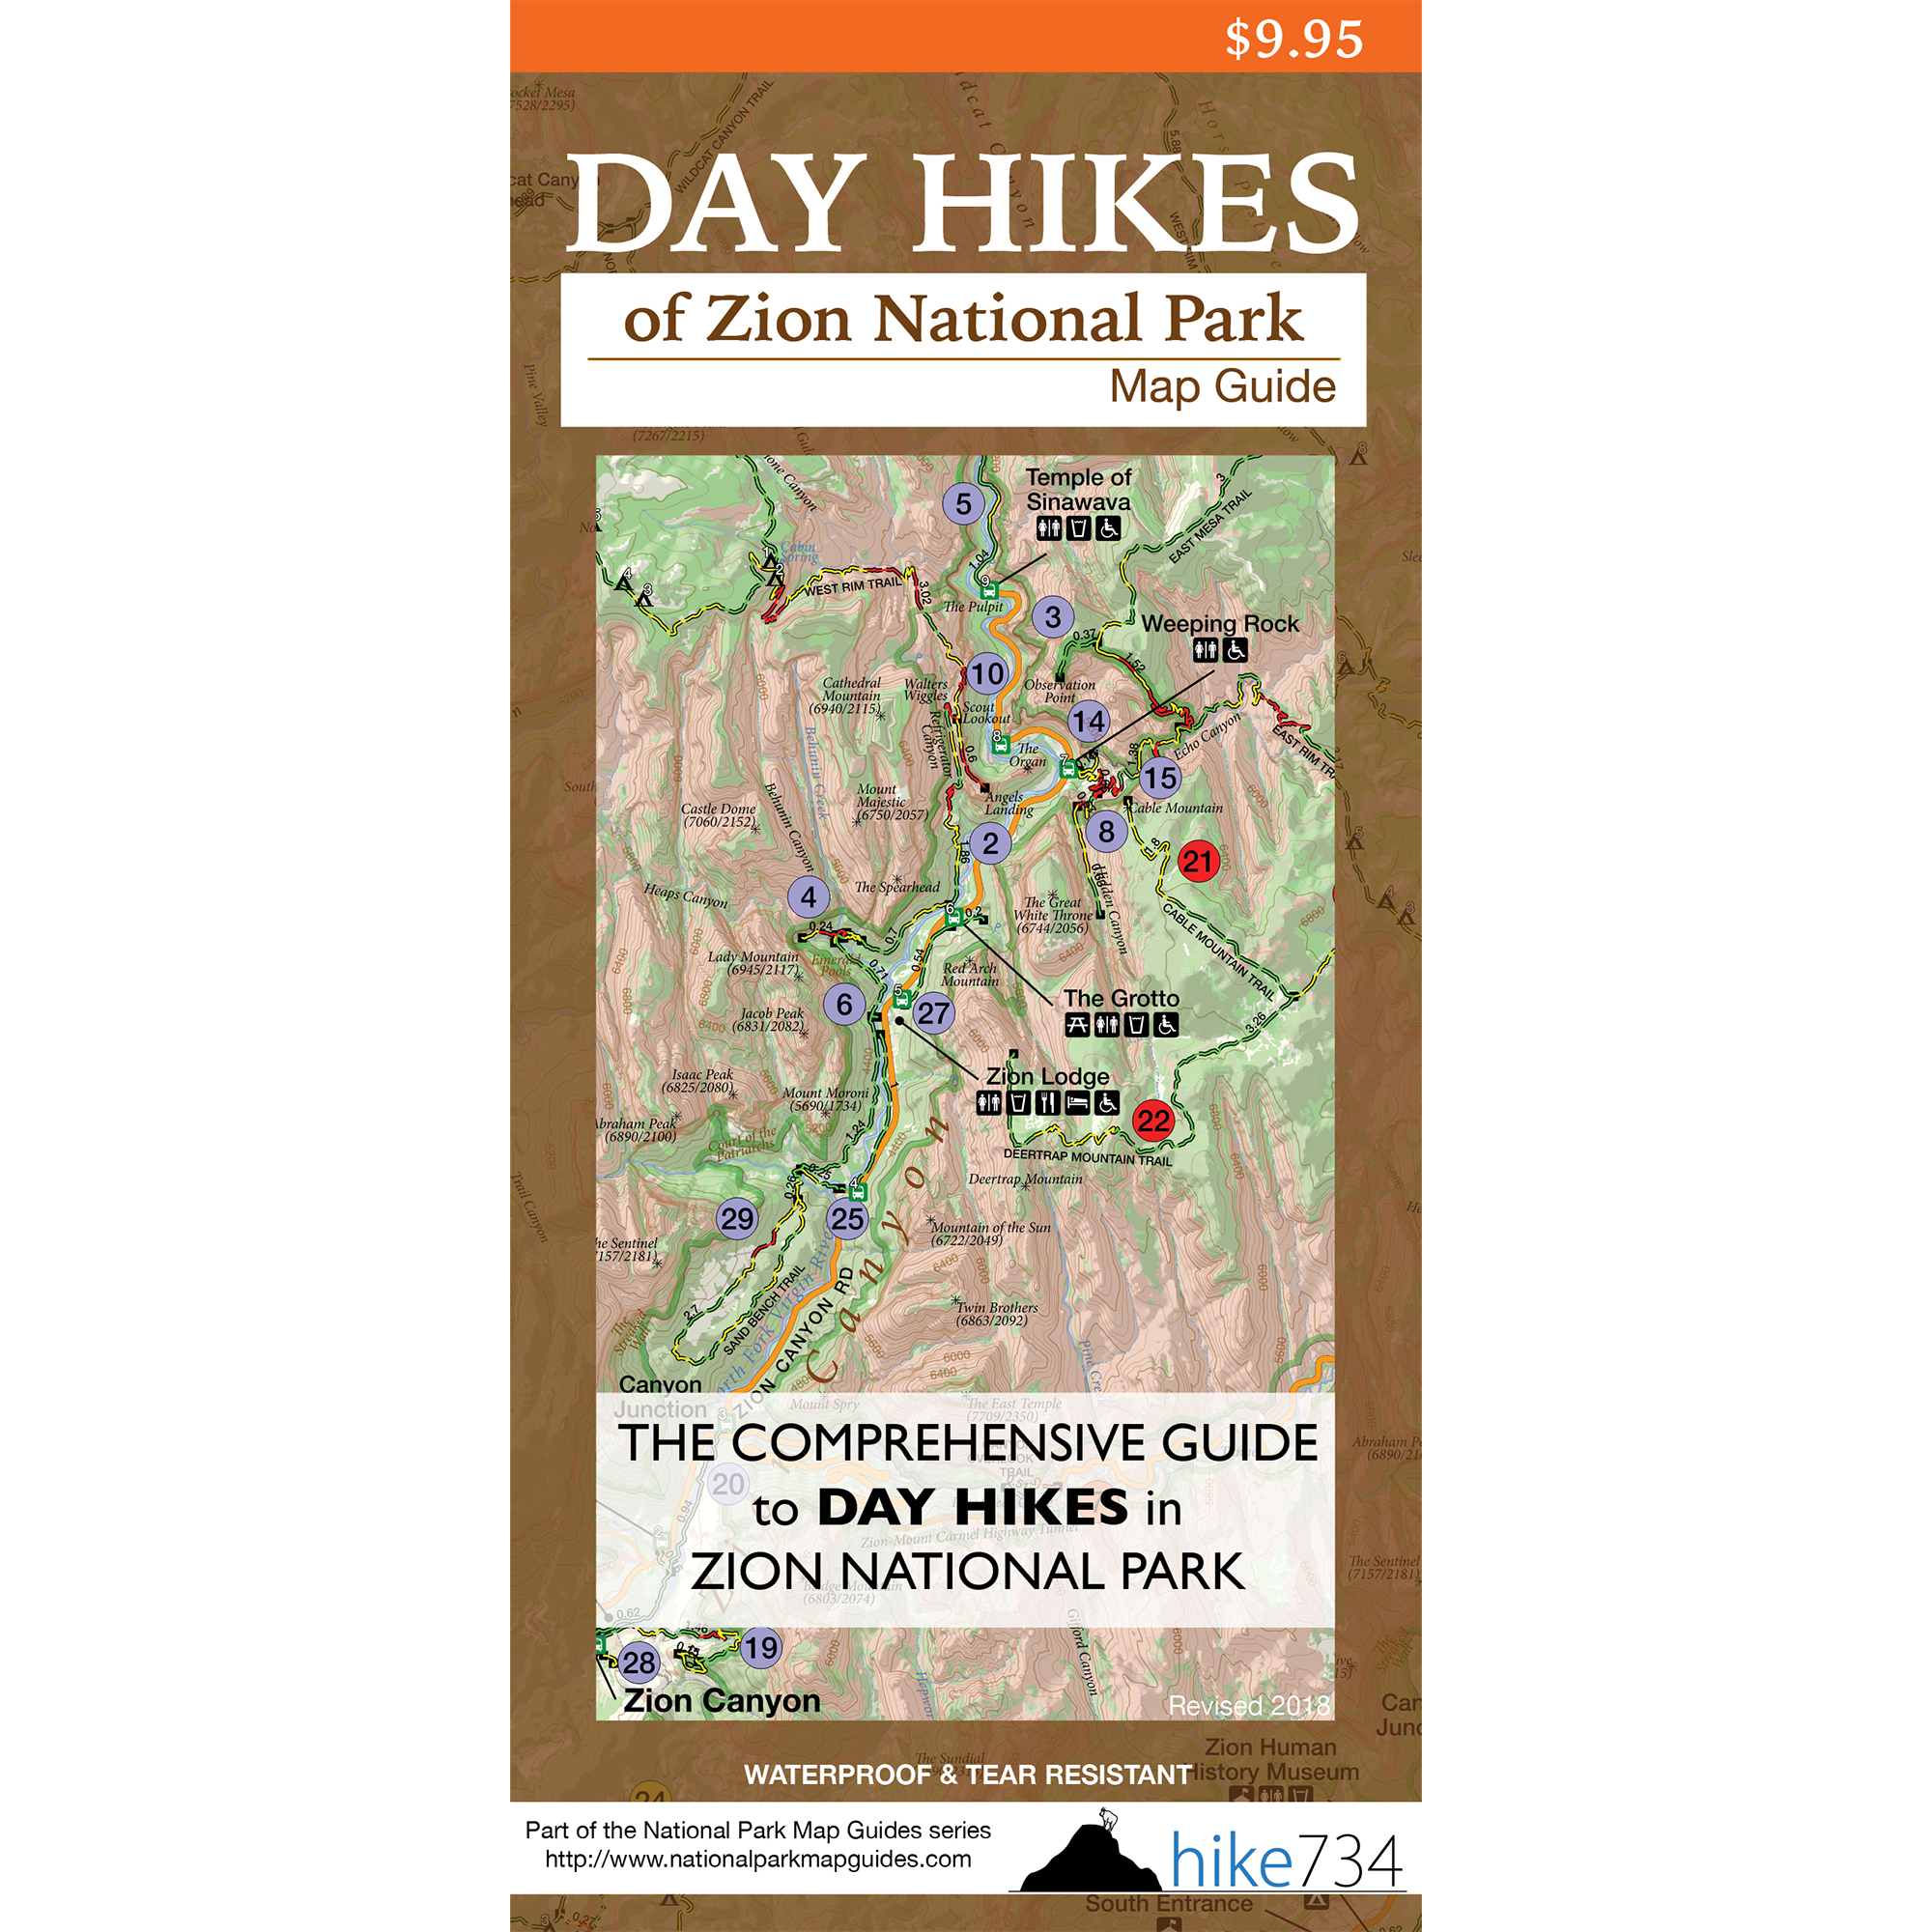 Day Hikes of Zion National Park Map Guide on snowbird hiking map, redwood national park hiking map, escalante river hiking map, moab hiking map, coyote buttes hiking map, las vegas hiking map, vedauwoo hiking map, city of rocks national reserve hiking map, ashley national forest hiking map, palo duro canyon hiking map, dead horse point hiking map, death valley hiking map, lake mead hiking map, lake powell hiking map, wills creek hiking map, mt. zion utah map, los angeles hiking map, garden of the gods hiking map, washington hiking map, bighorn national forest hiking map,